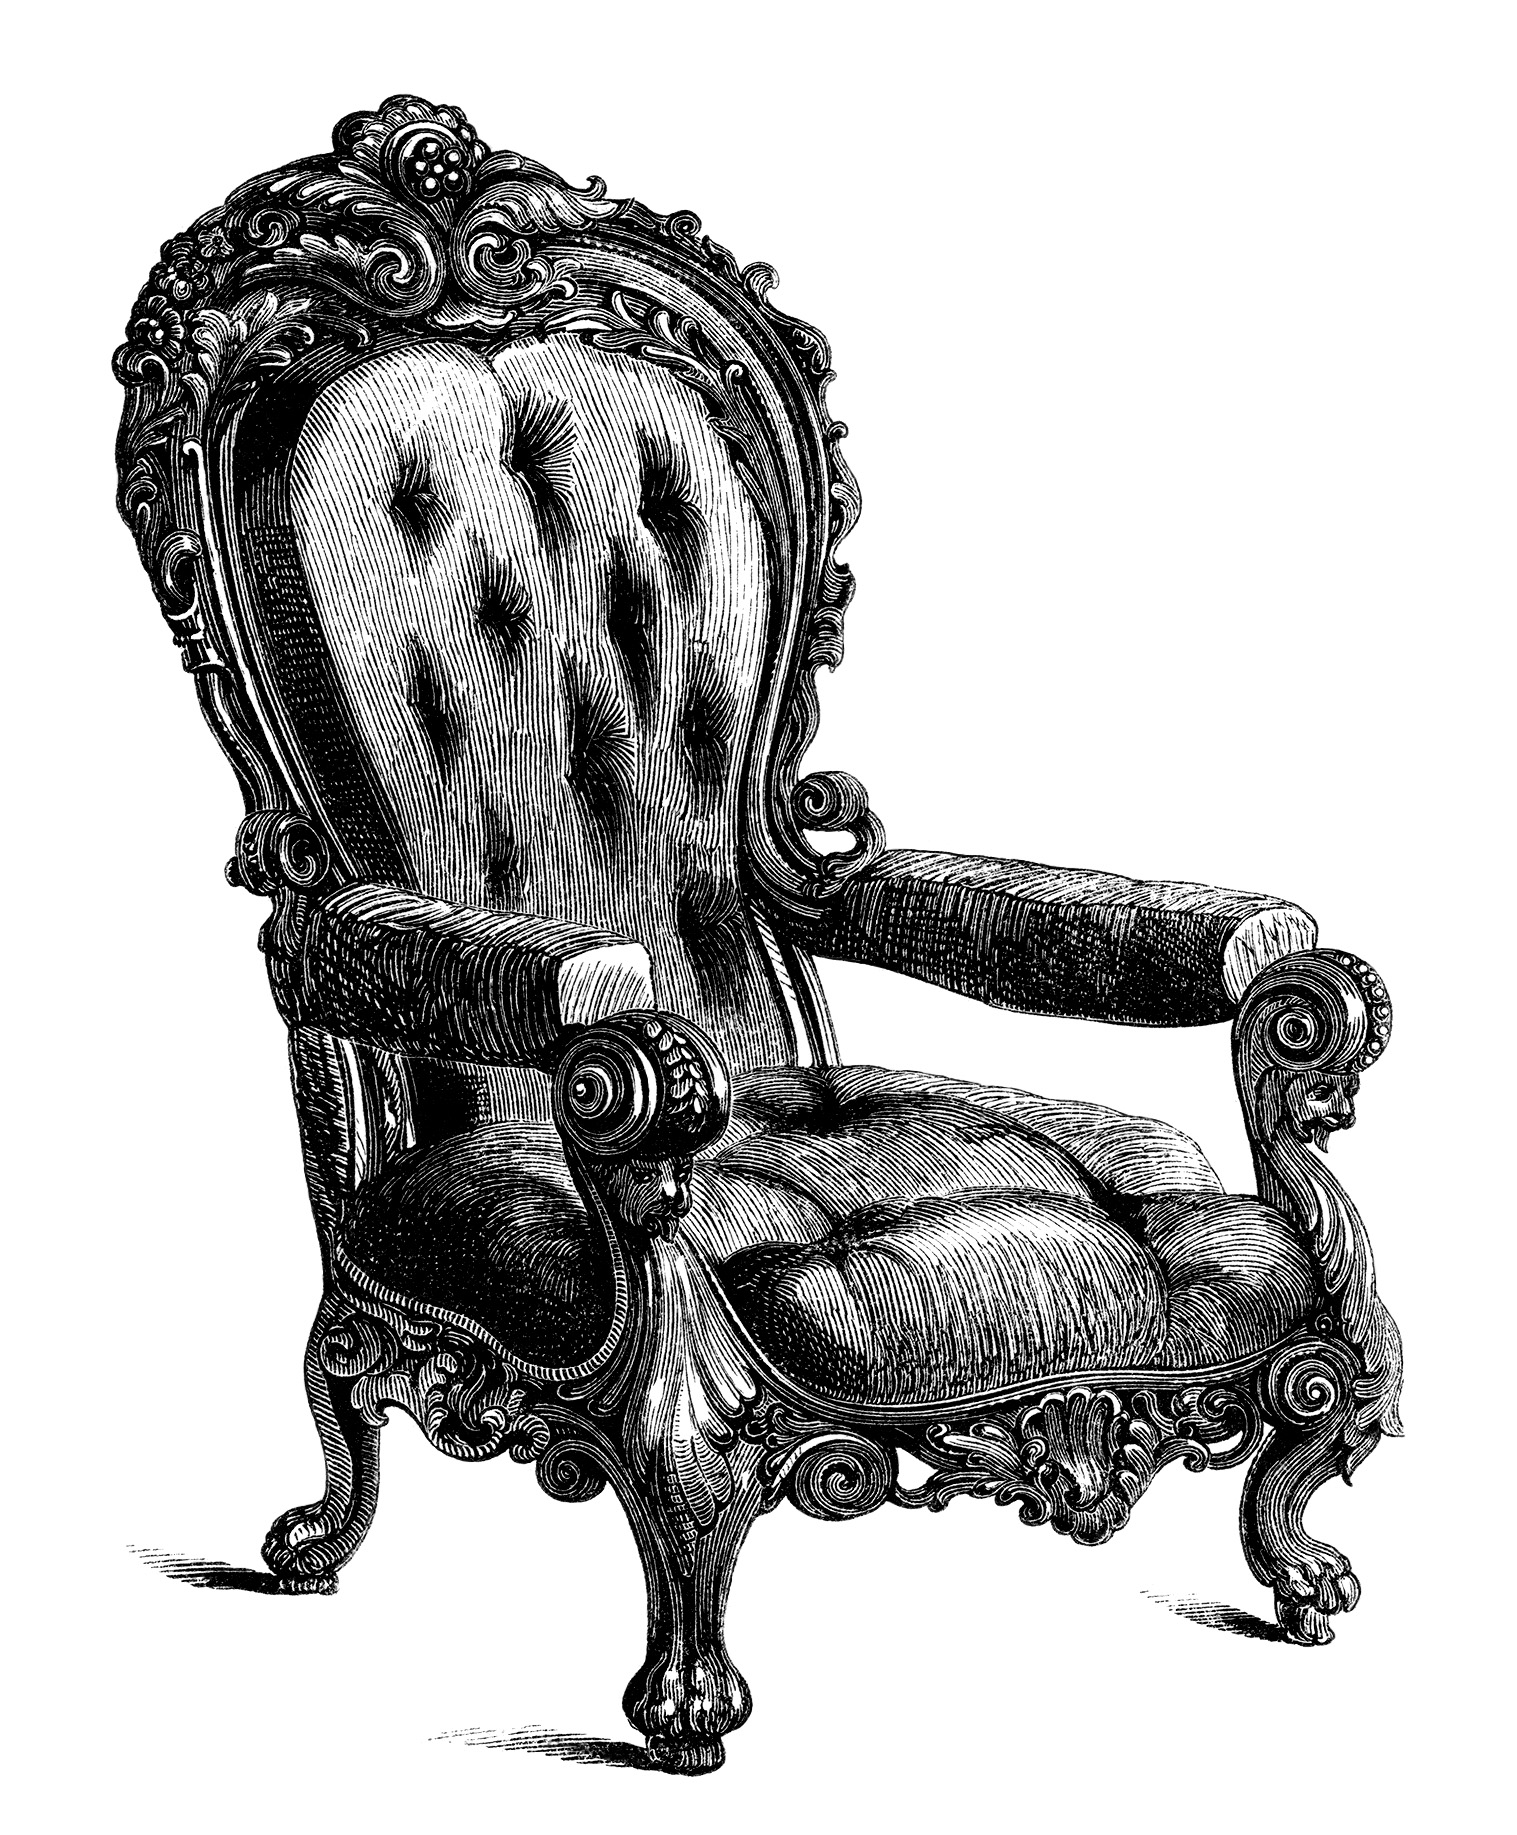 Black and white chair drawing - Antique Chairs Free Clip Art Engravings Old Design Shop Blog Printable Images Pinterest Vintage Chairs And Home Renovation